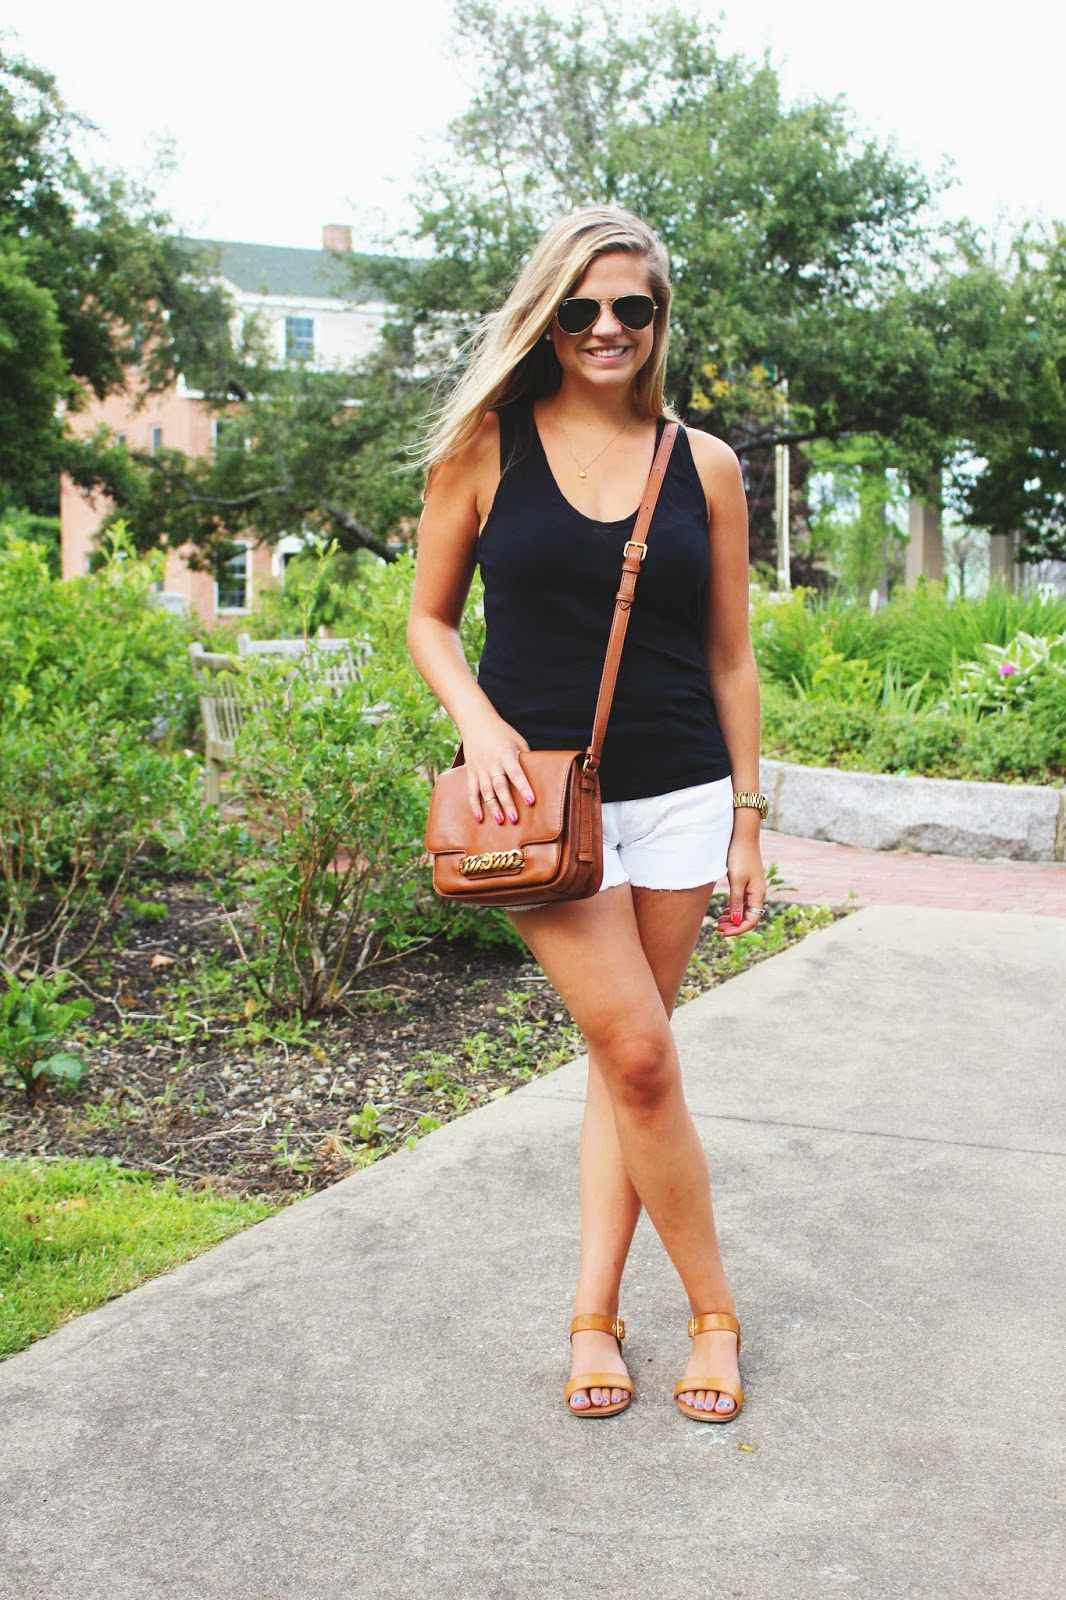 c58ff7faaa Style Cubby - Fashion and Lifestyle Blog Based in New England ...